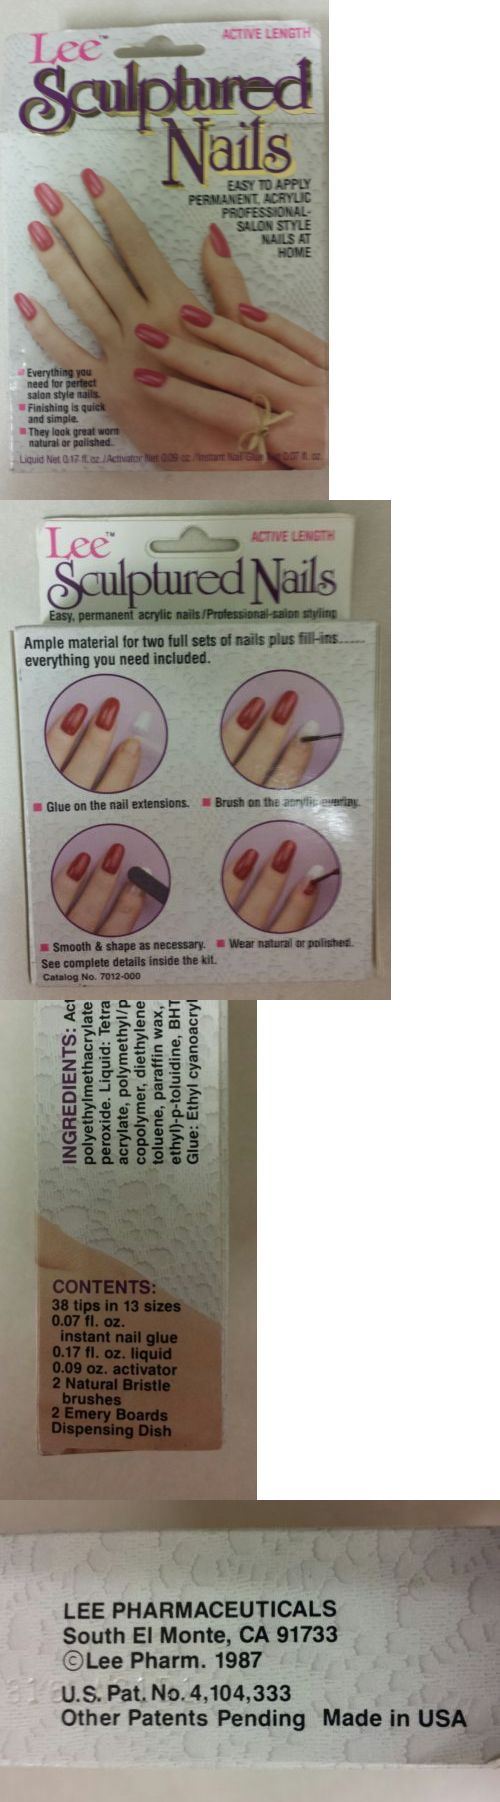 Press-On Nails: Lee Sculptured Nails! Vintage Pack Of 38 Active Length Nails! Unique Old Item! -> BUY IT NOW ONLY: $49.99 on eBay!